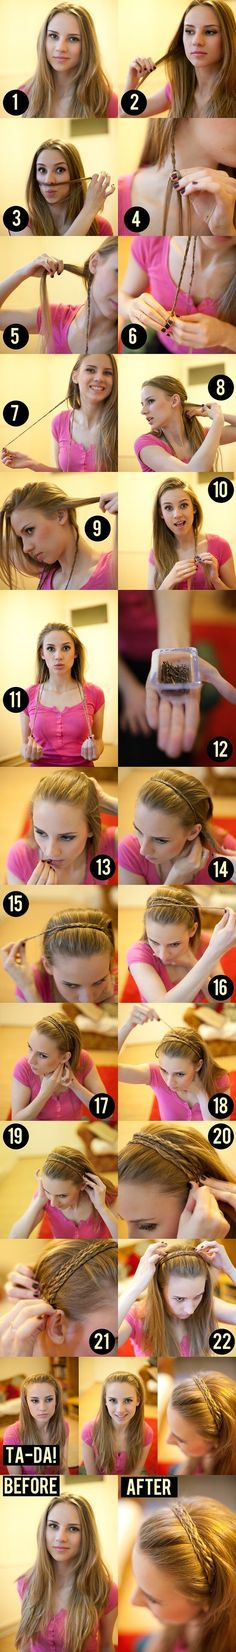 I want to try this hairstyle so bad. It seems just easy enough for an everyday…